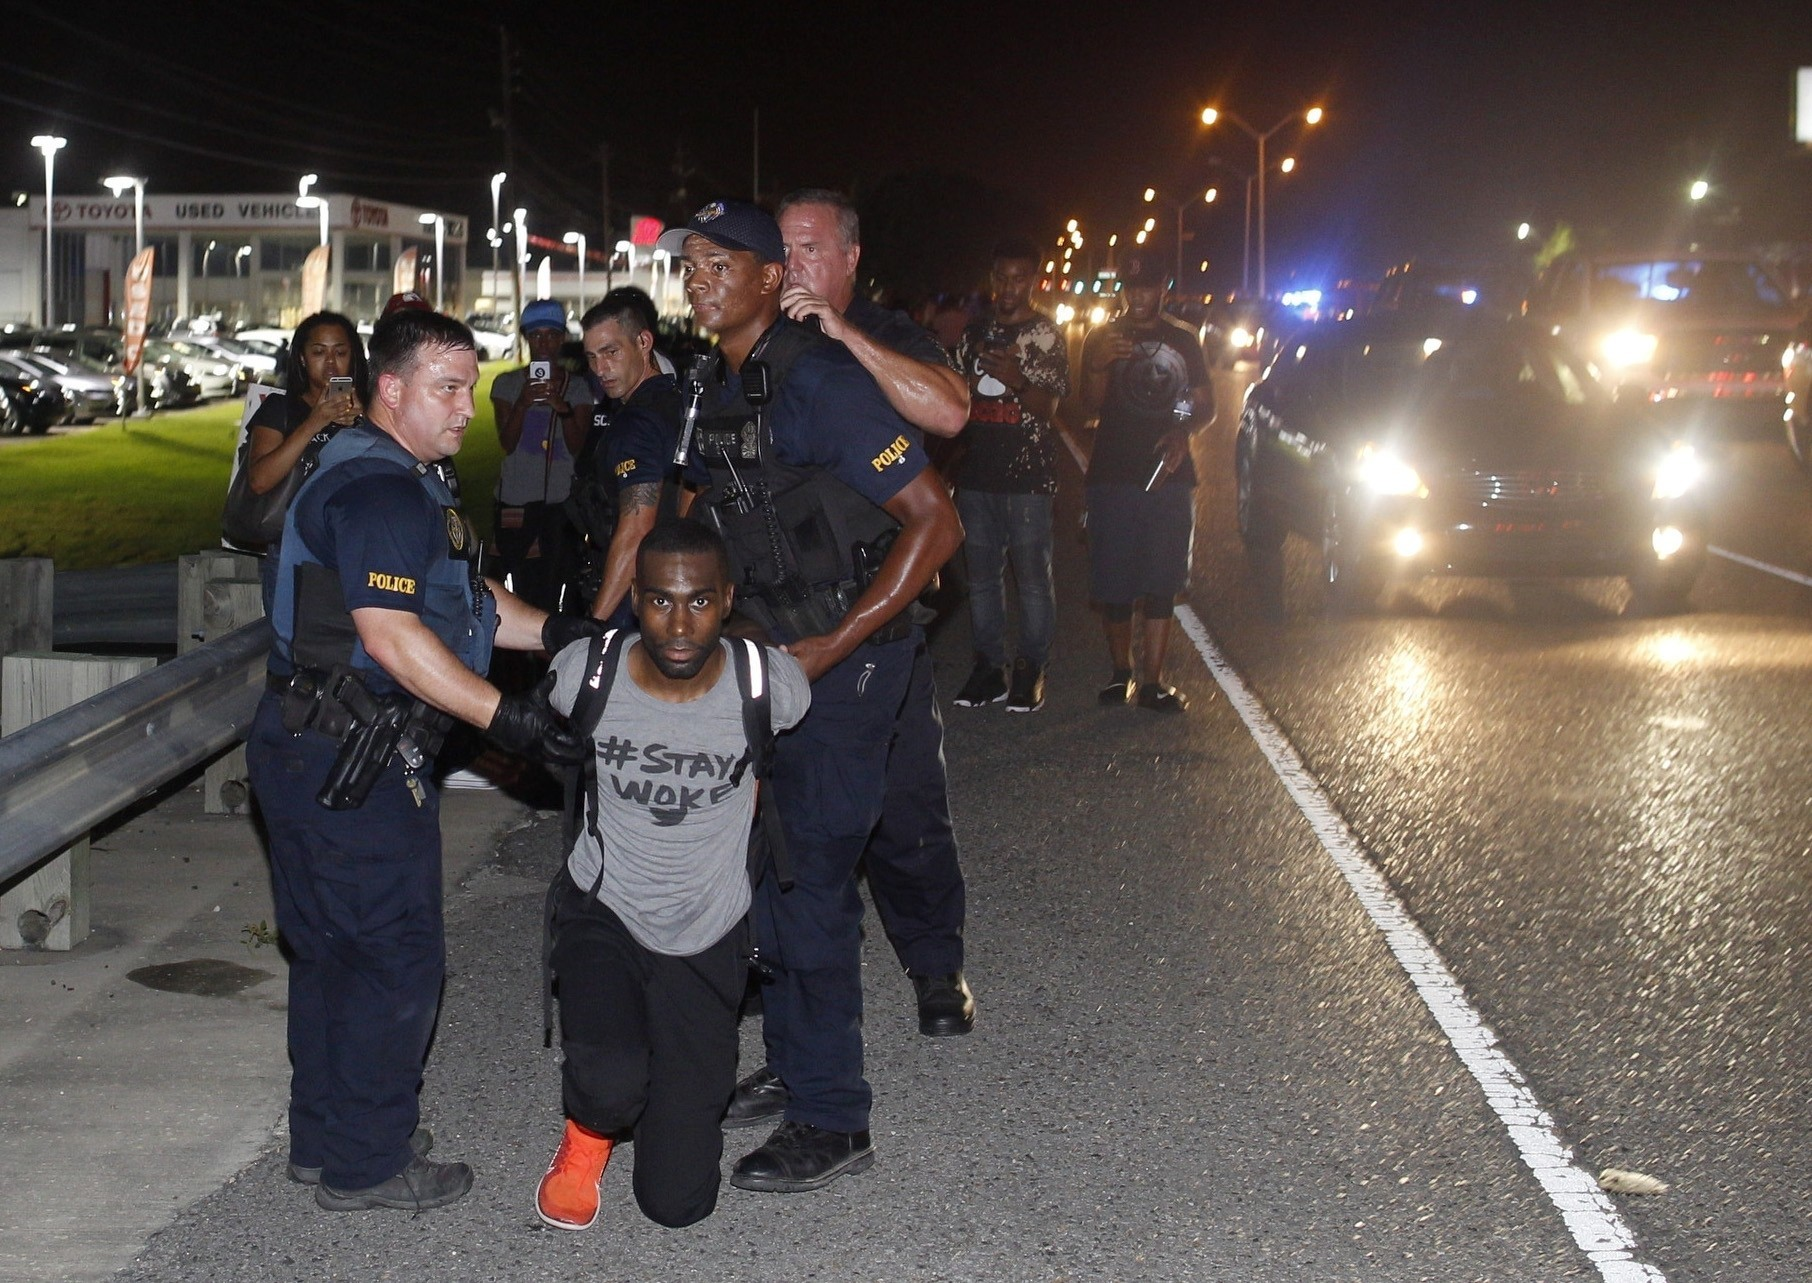 Baltimore police officers in riot gear push protestors back along - Protests Continue In Baton Rouge Hundreds Arrested Countrywide Chicago Tribune